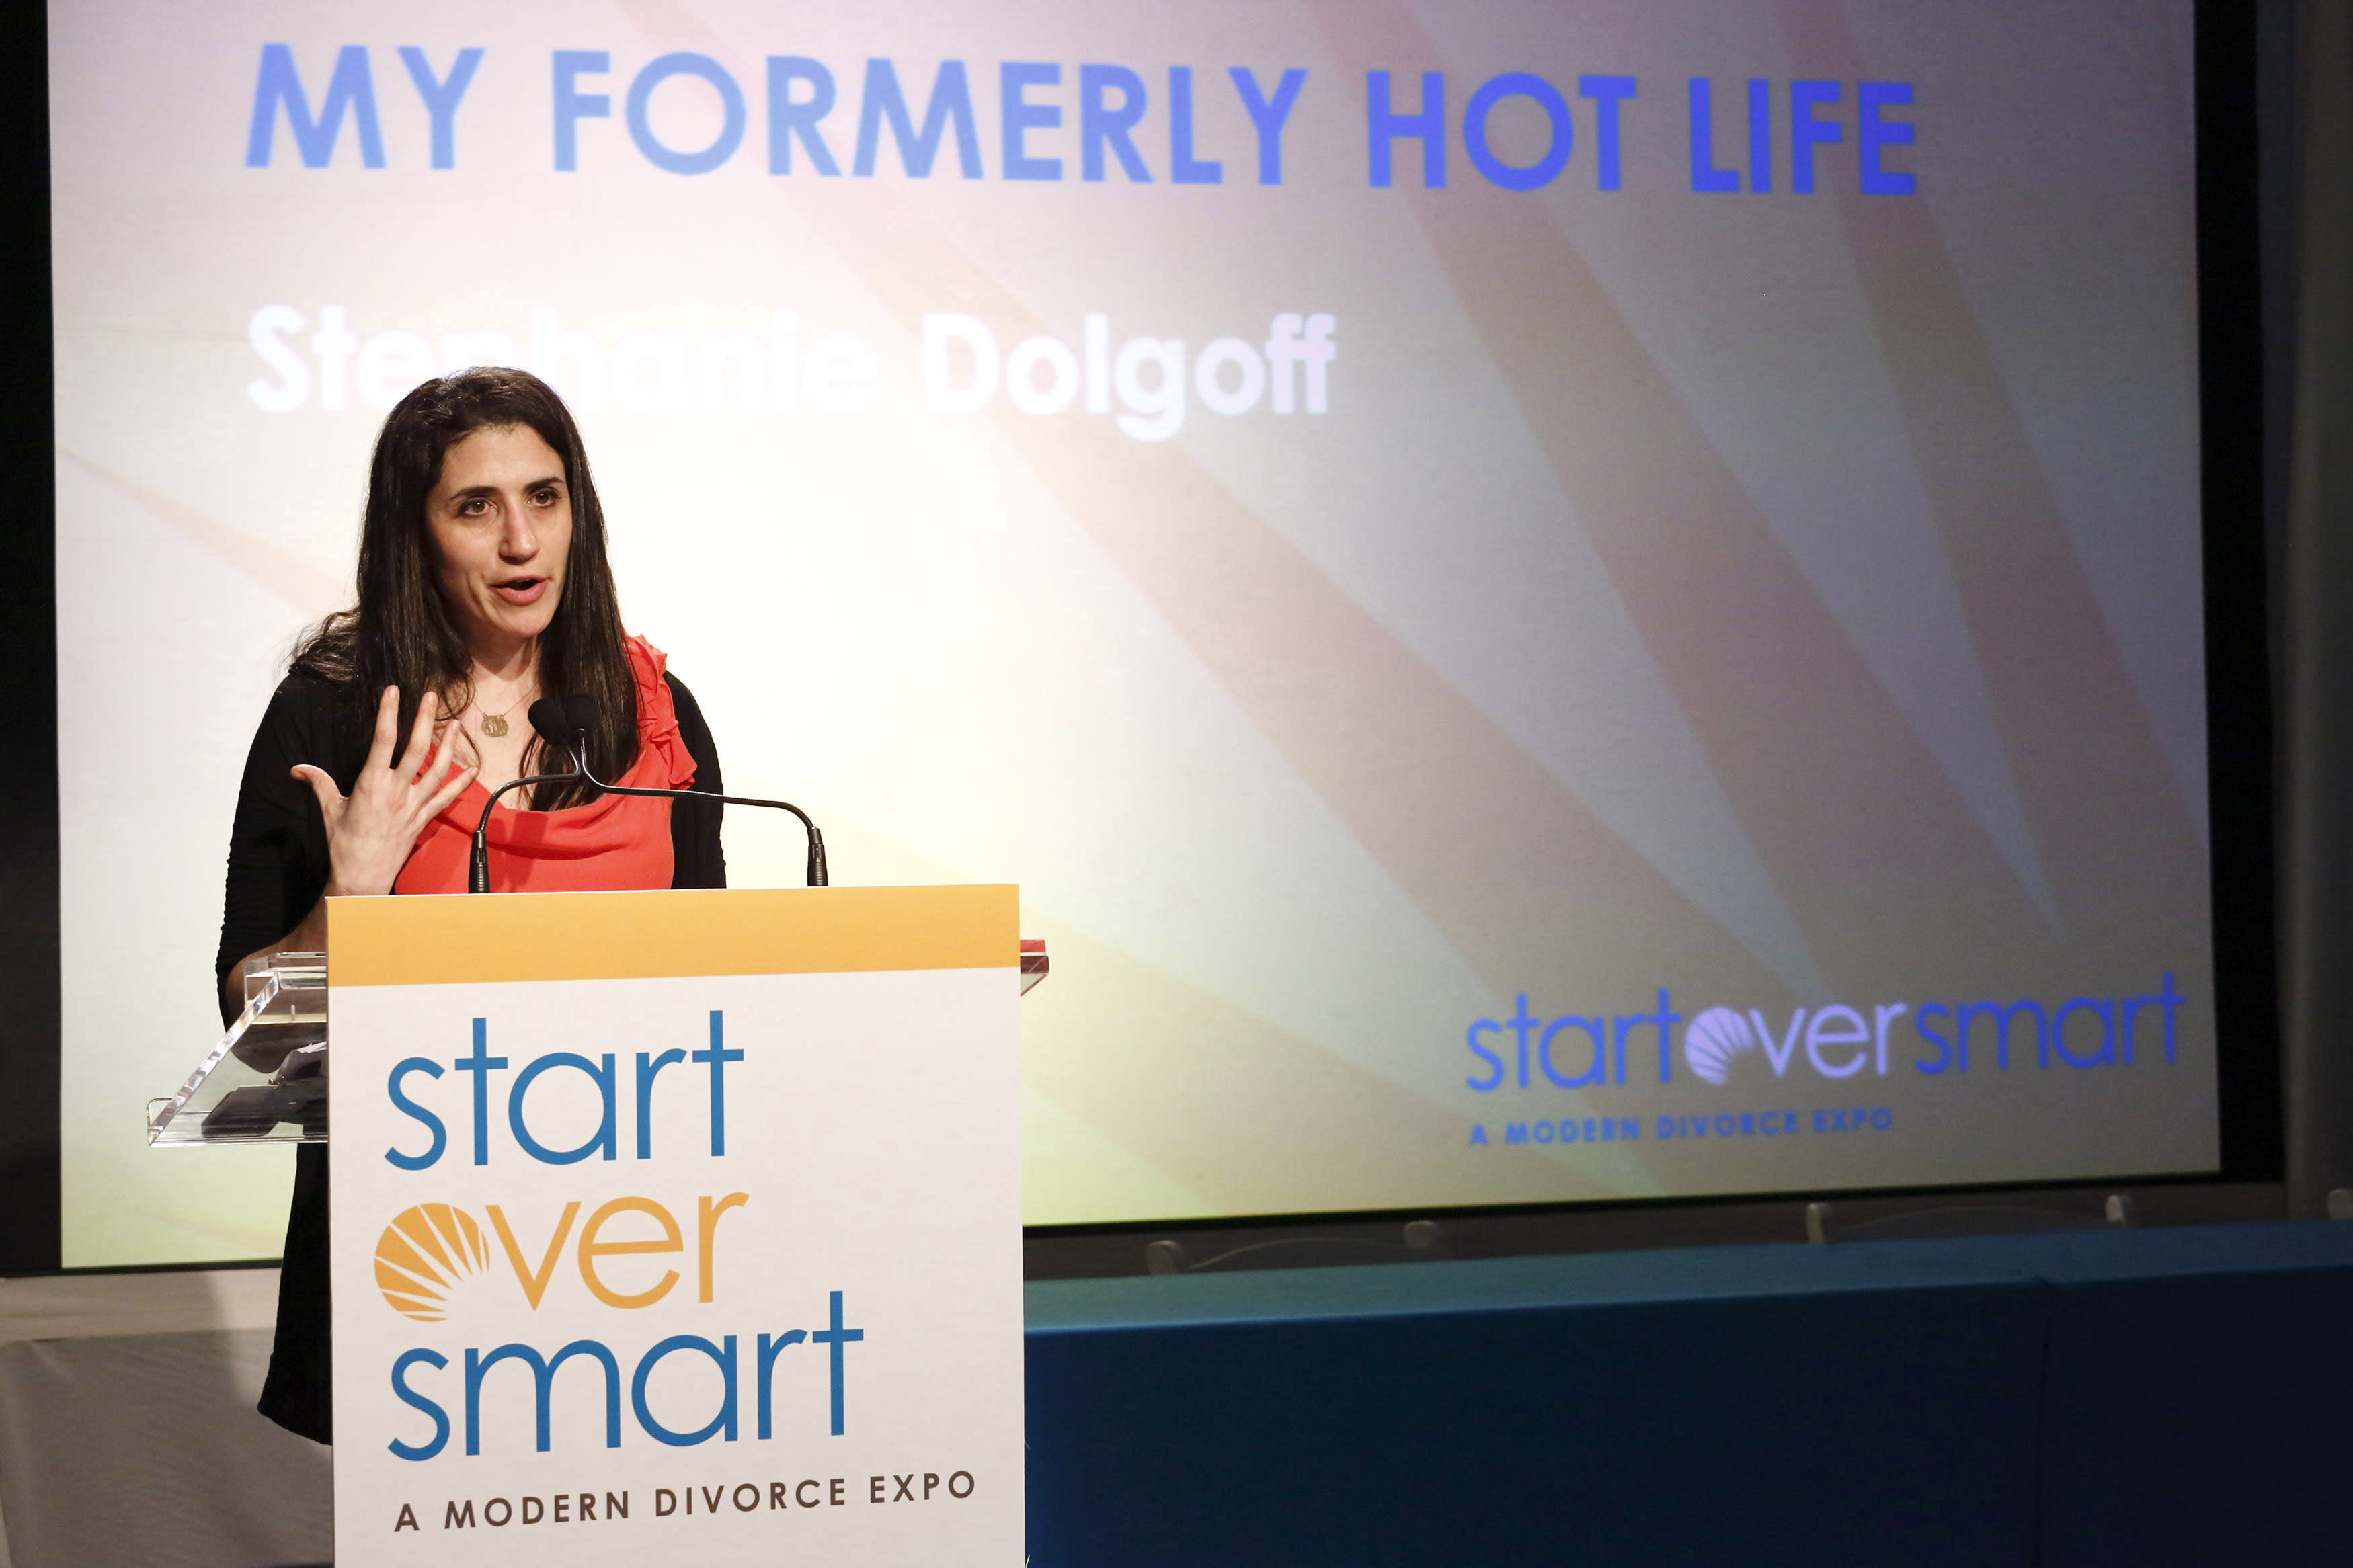 """In this march 31, 2012 photo, author Stephanie Dolgoff presents a lecture entitled """"My Formerly Hot Life"""" at the Start Over Smart Divorce Expo in New York. A smattering of vendors set up booths offering everything from a divorce planning binder to advice on long-term insurance, with seminars on such topics as """"Sensuality Secrets"""" and """"My Formerly Hot Life."""" (AP Photo/Charles Sykes)"""